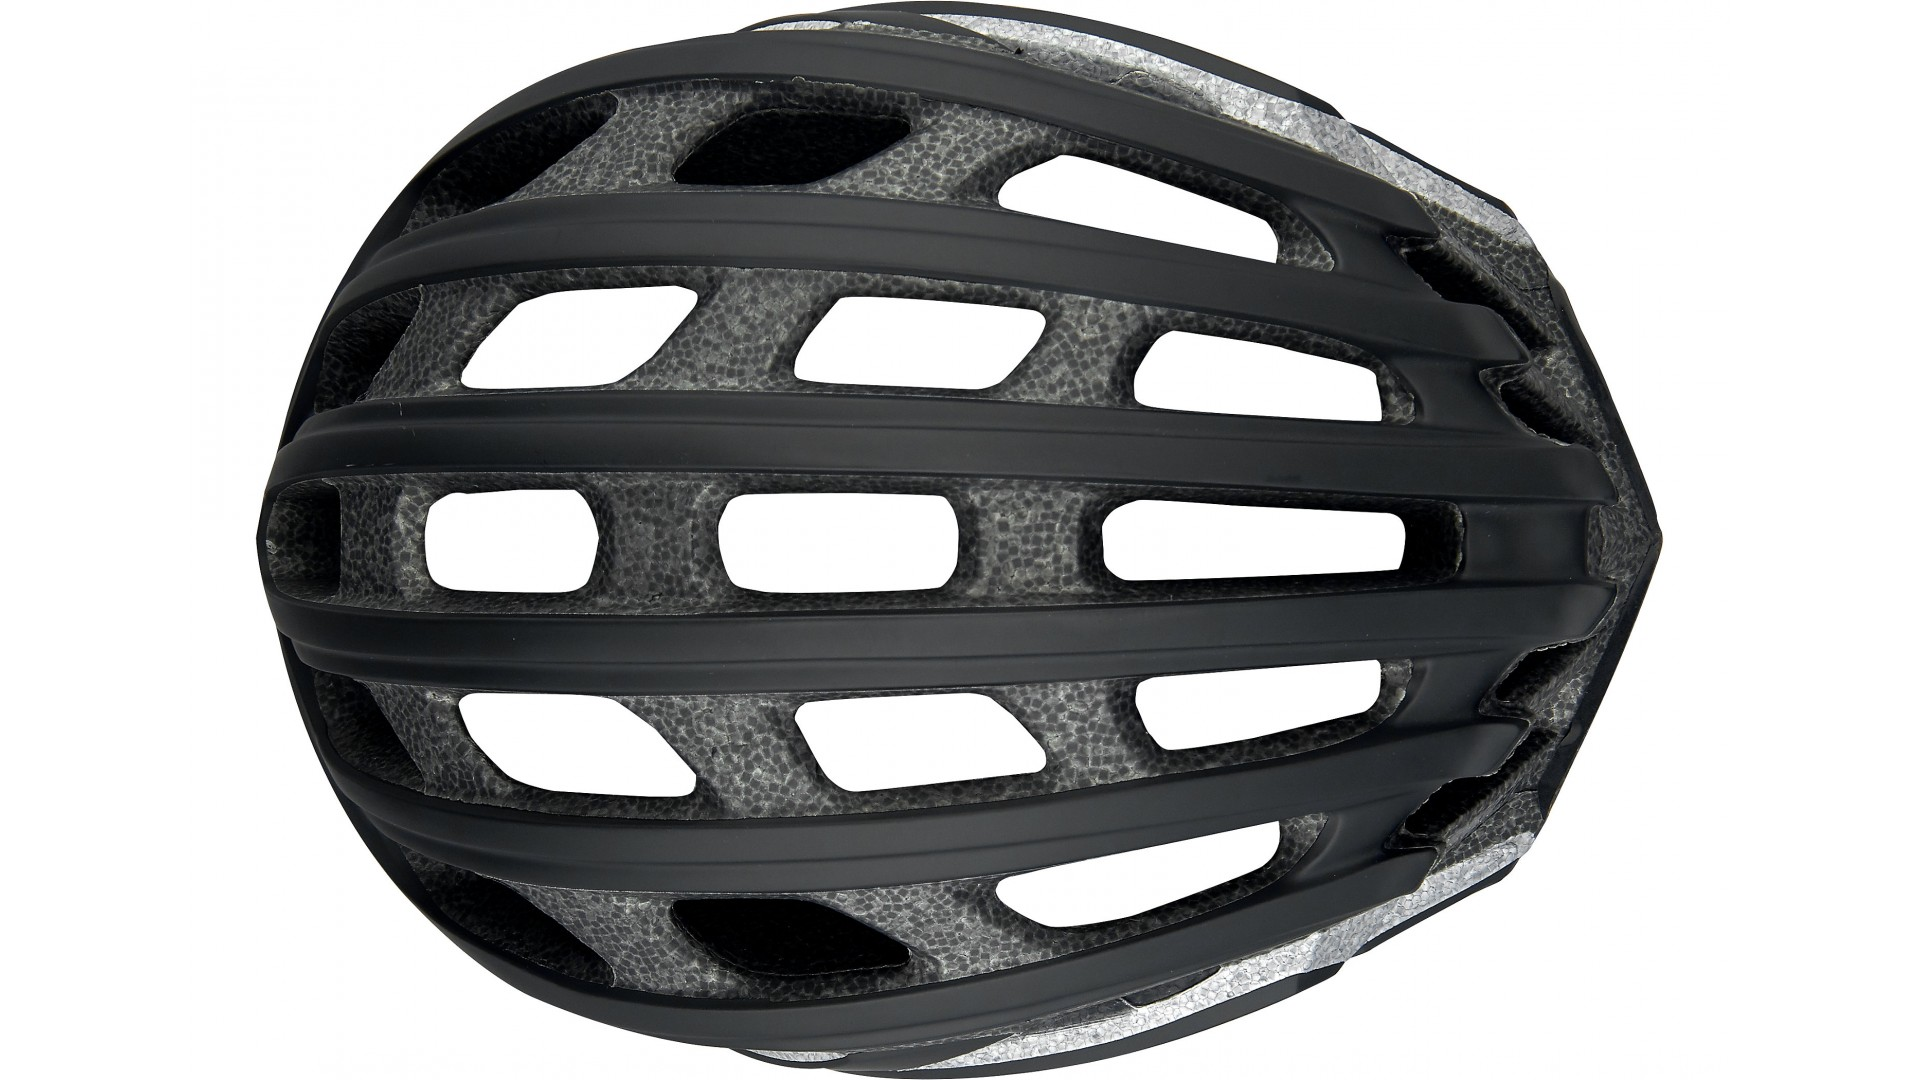 S-Works Prevail II Mips Casco Ciclismo Carretera Specialized Negro Mate 3 IBKBike.es